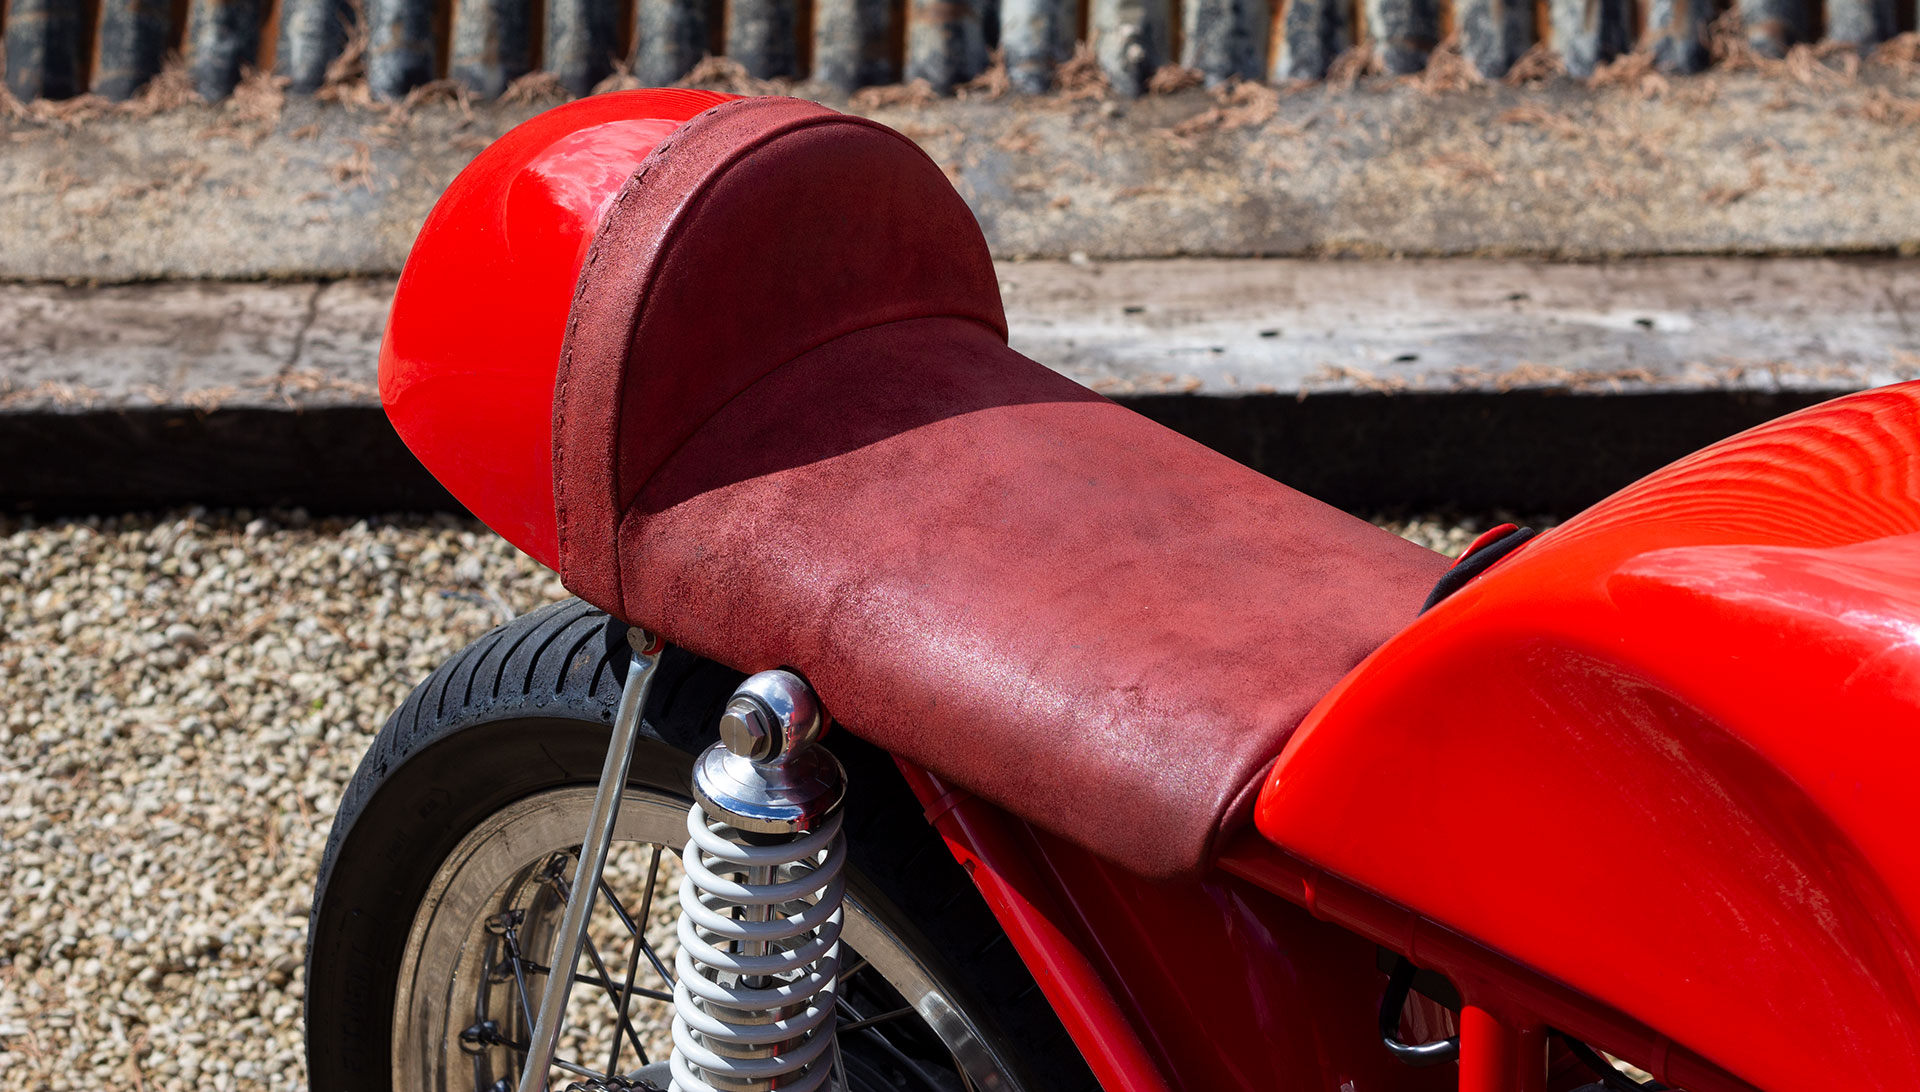 MV Agusta 350cc 3-Cylinder Grand Prix for sale at The Classic Motor Hub